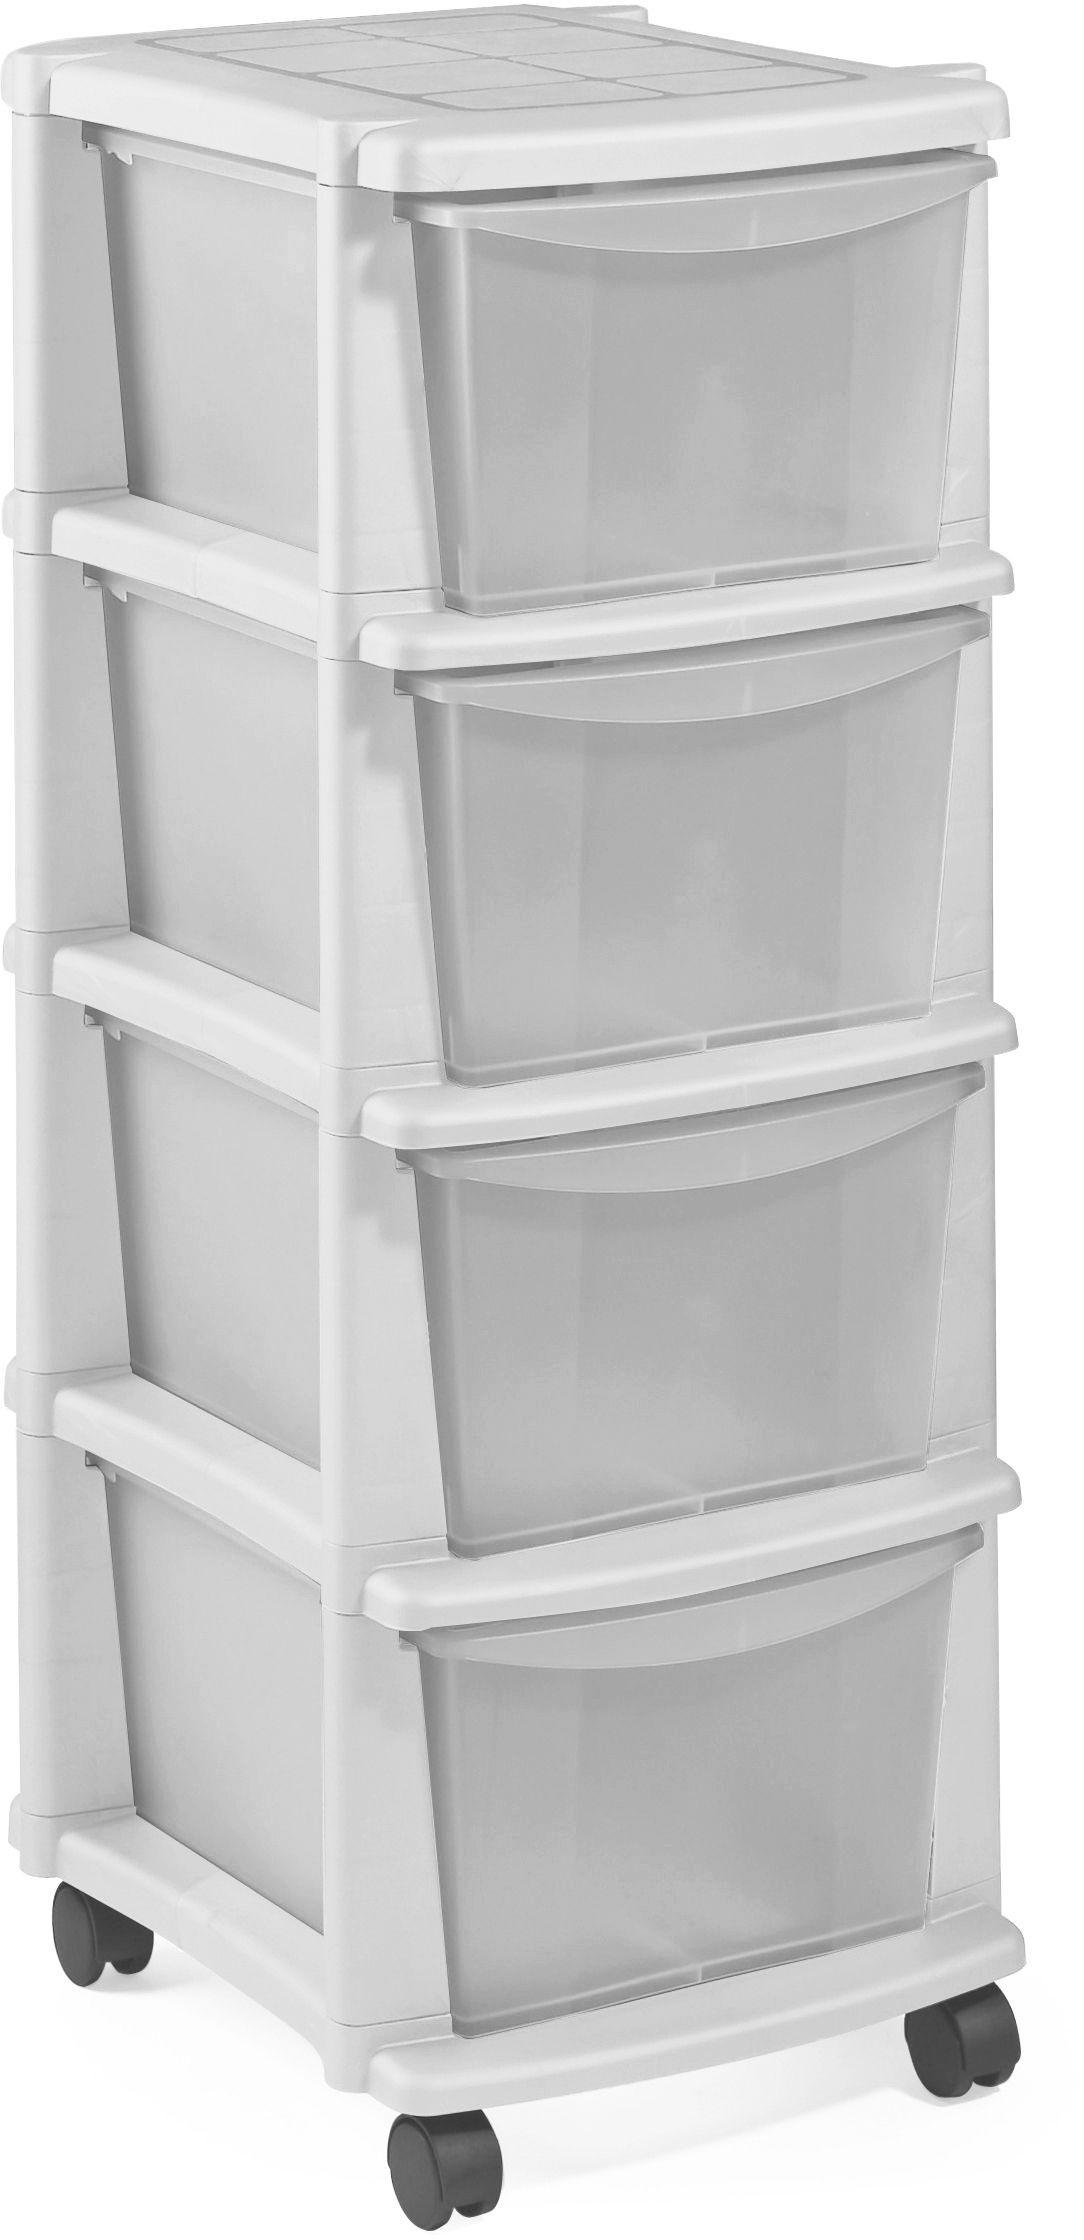 Argos Home 4 Drawer White Plastic Tower Storage Unit